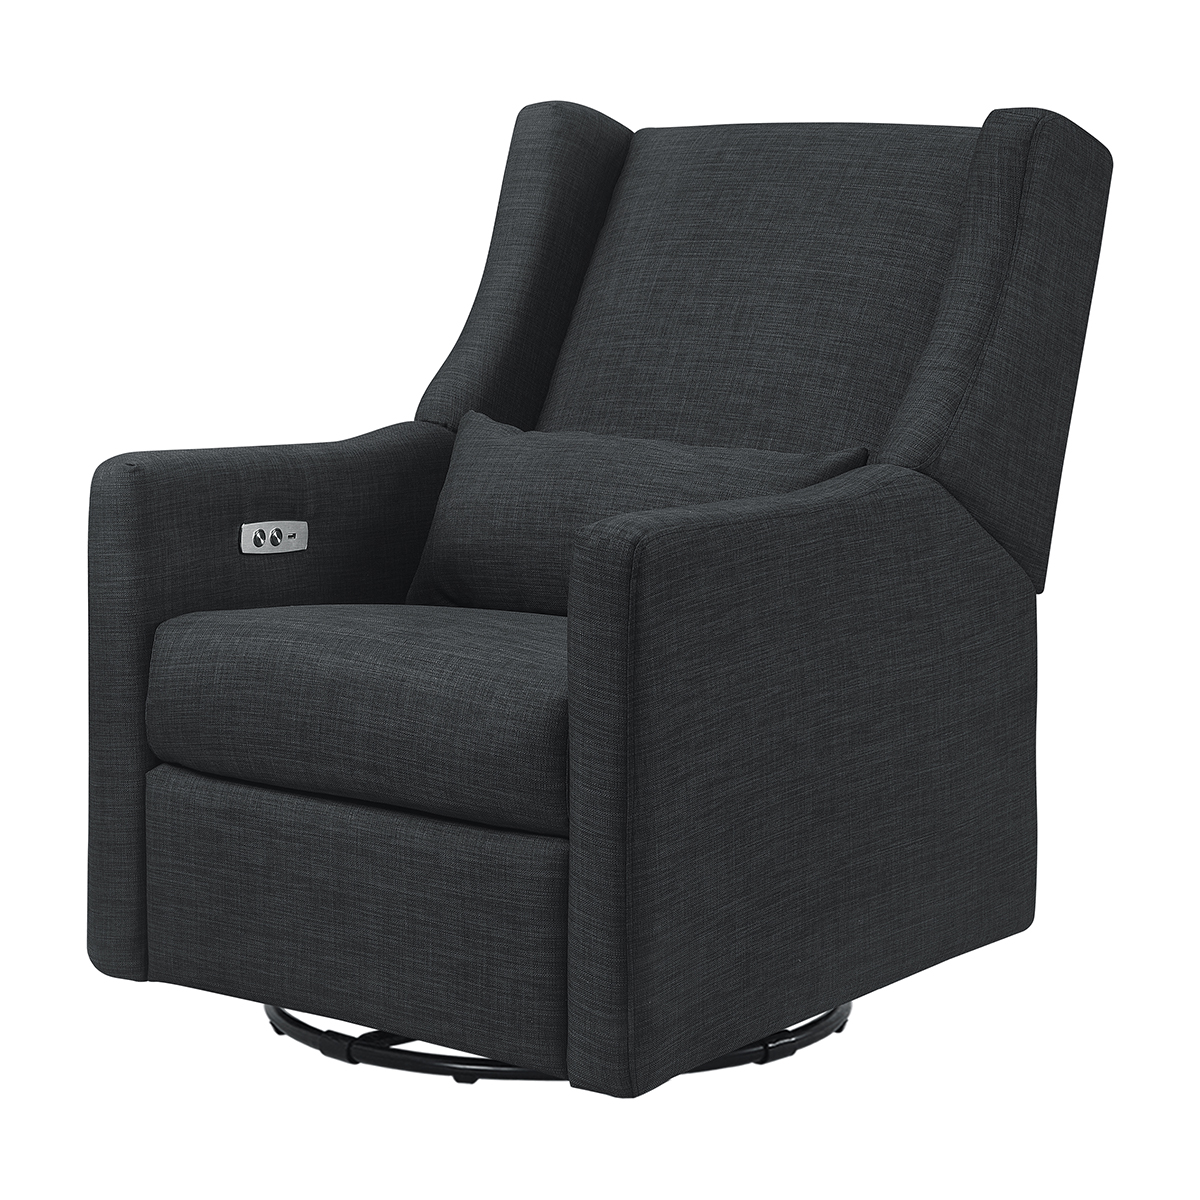 Kiwi Glider Recliner with Electronic Control & USB in Coal Grey